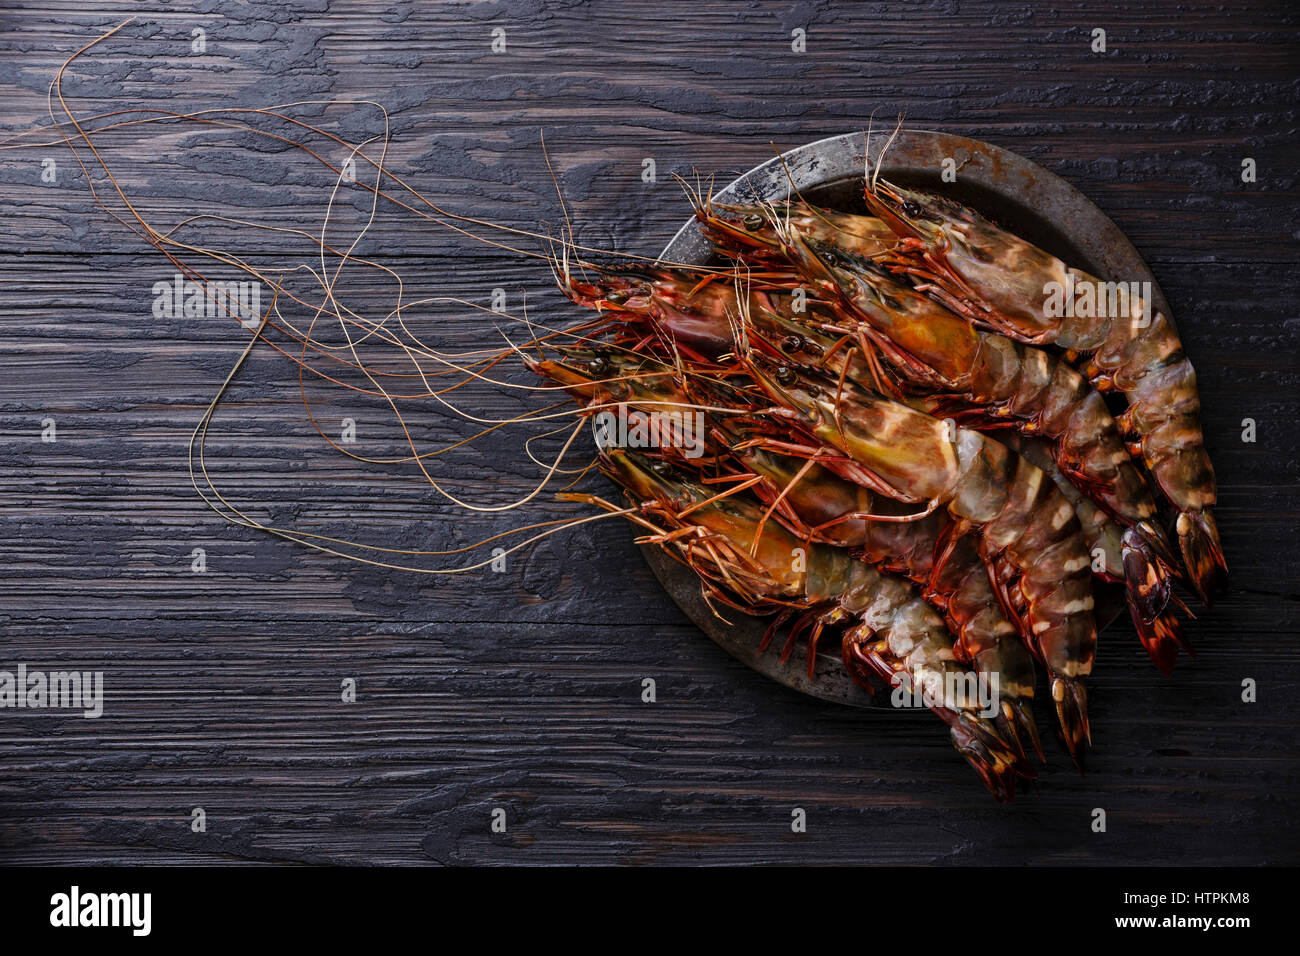 Raw fresh Tiger Prawn Shrimp in metal plate on burned ...